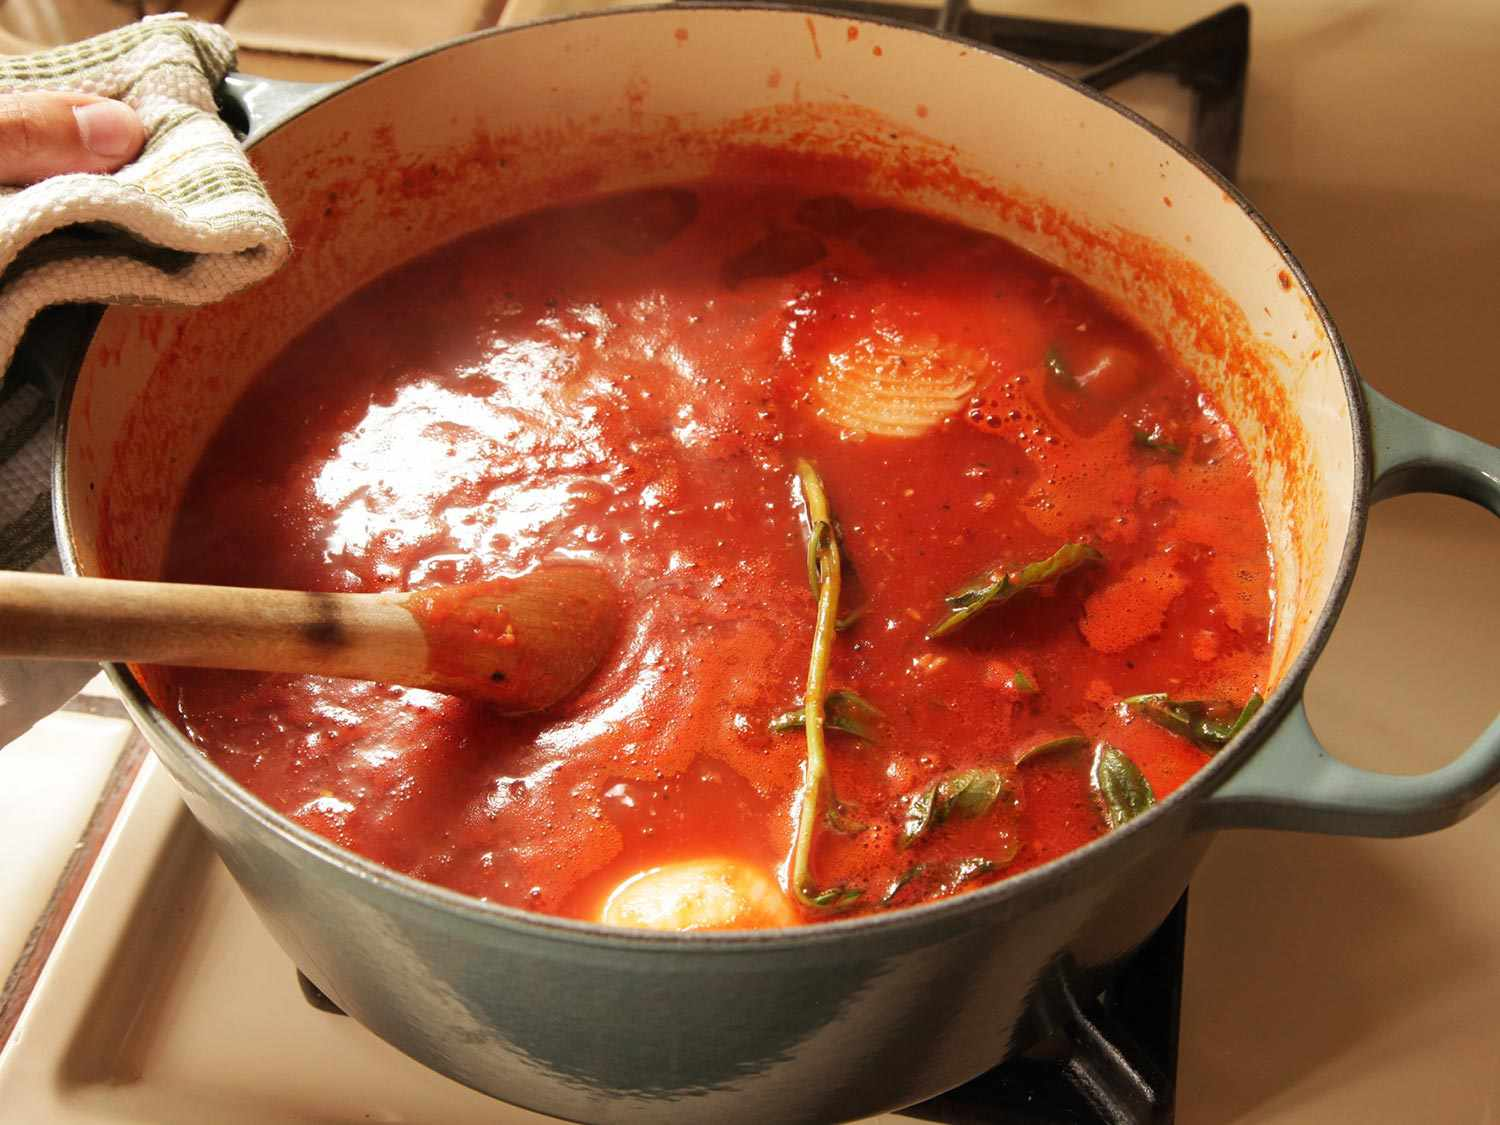 20140922-red-sauce-worth-waiting-for-recipe27.jpg